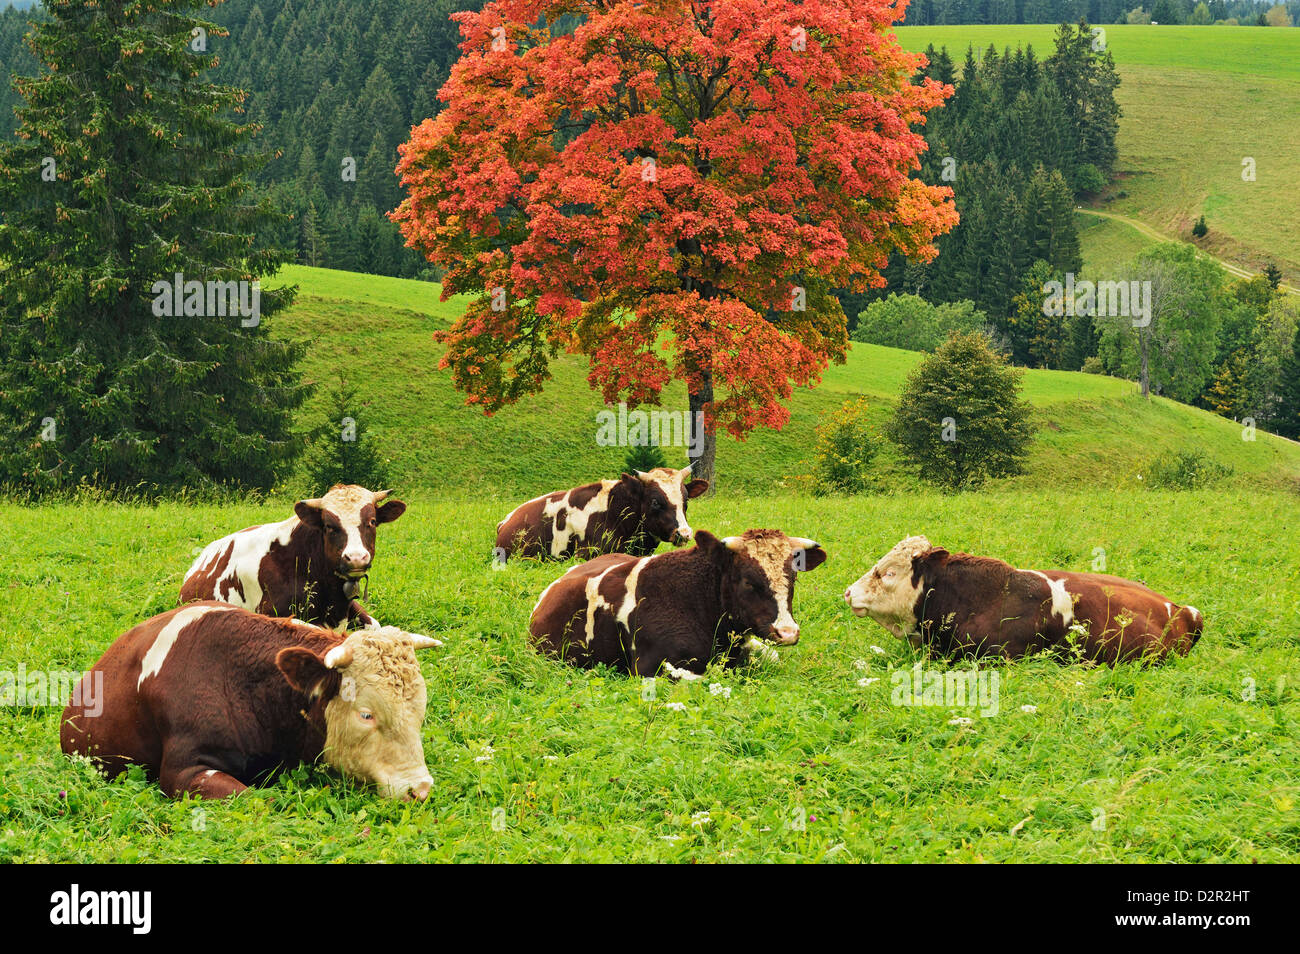 Bulls on pasture and maple tree, Black Forest, Schwarzwald-Baar, Baden-Wurttemberg, Germany, Europe - Stock Image